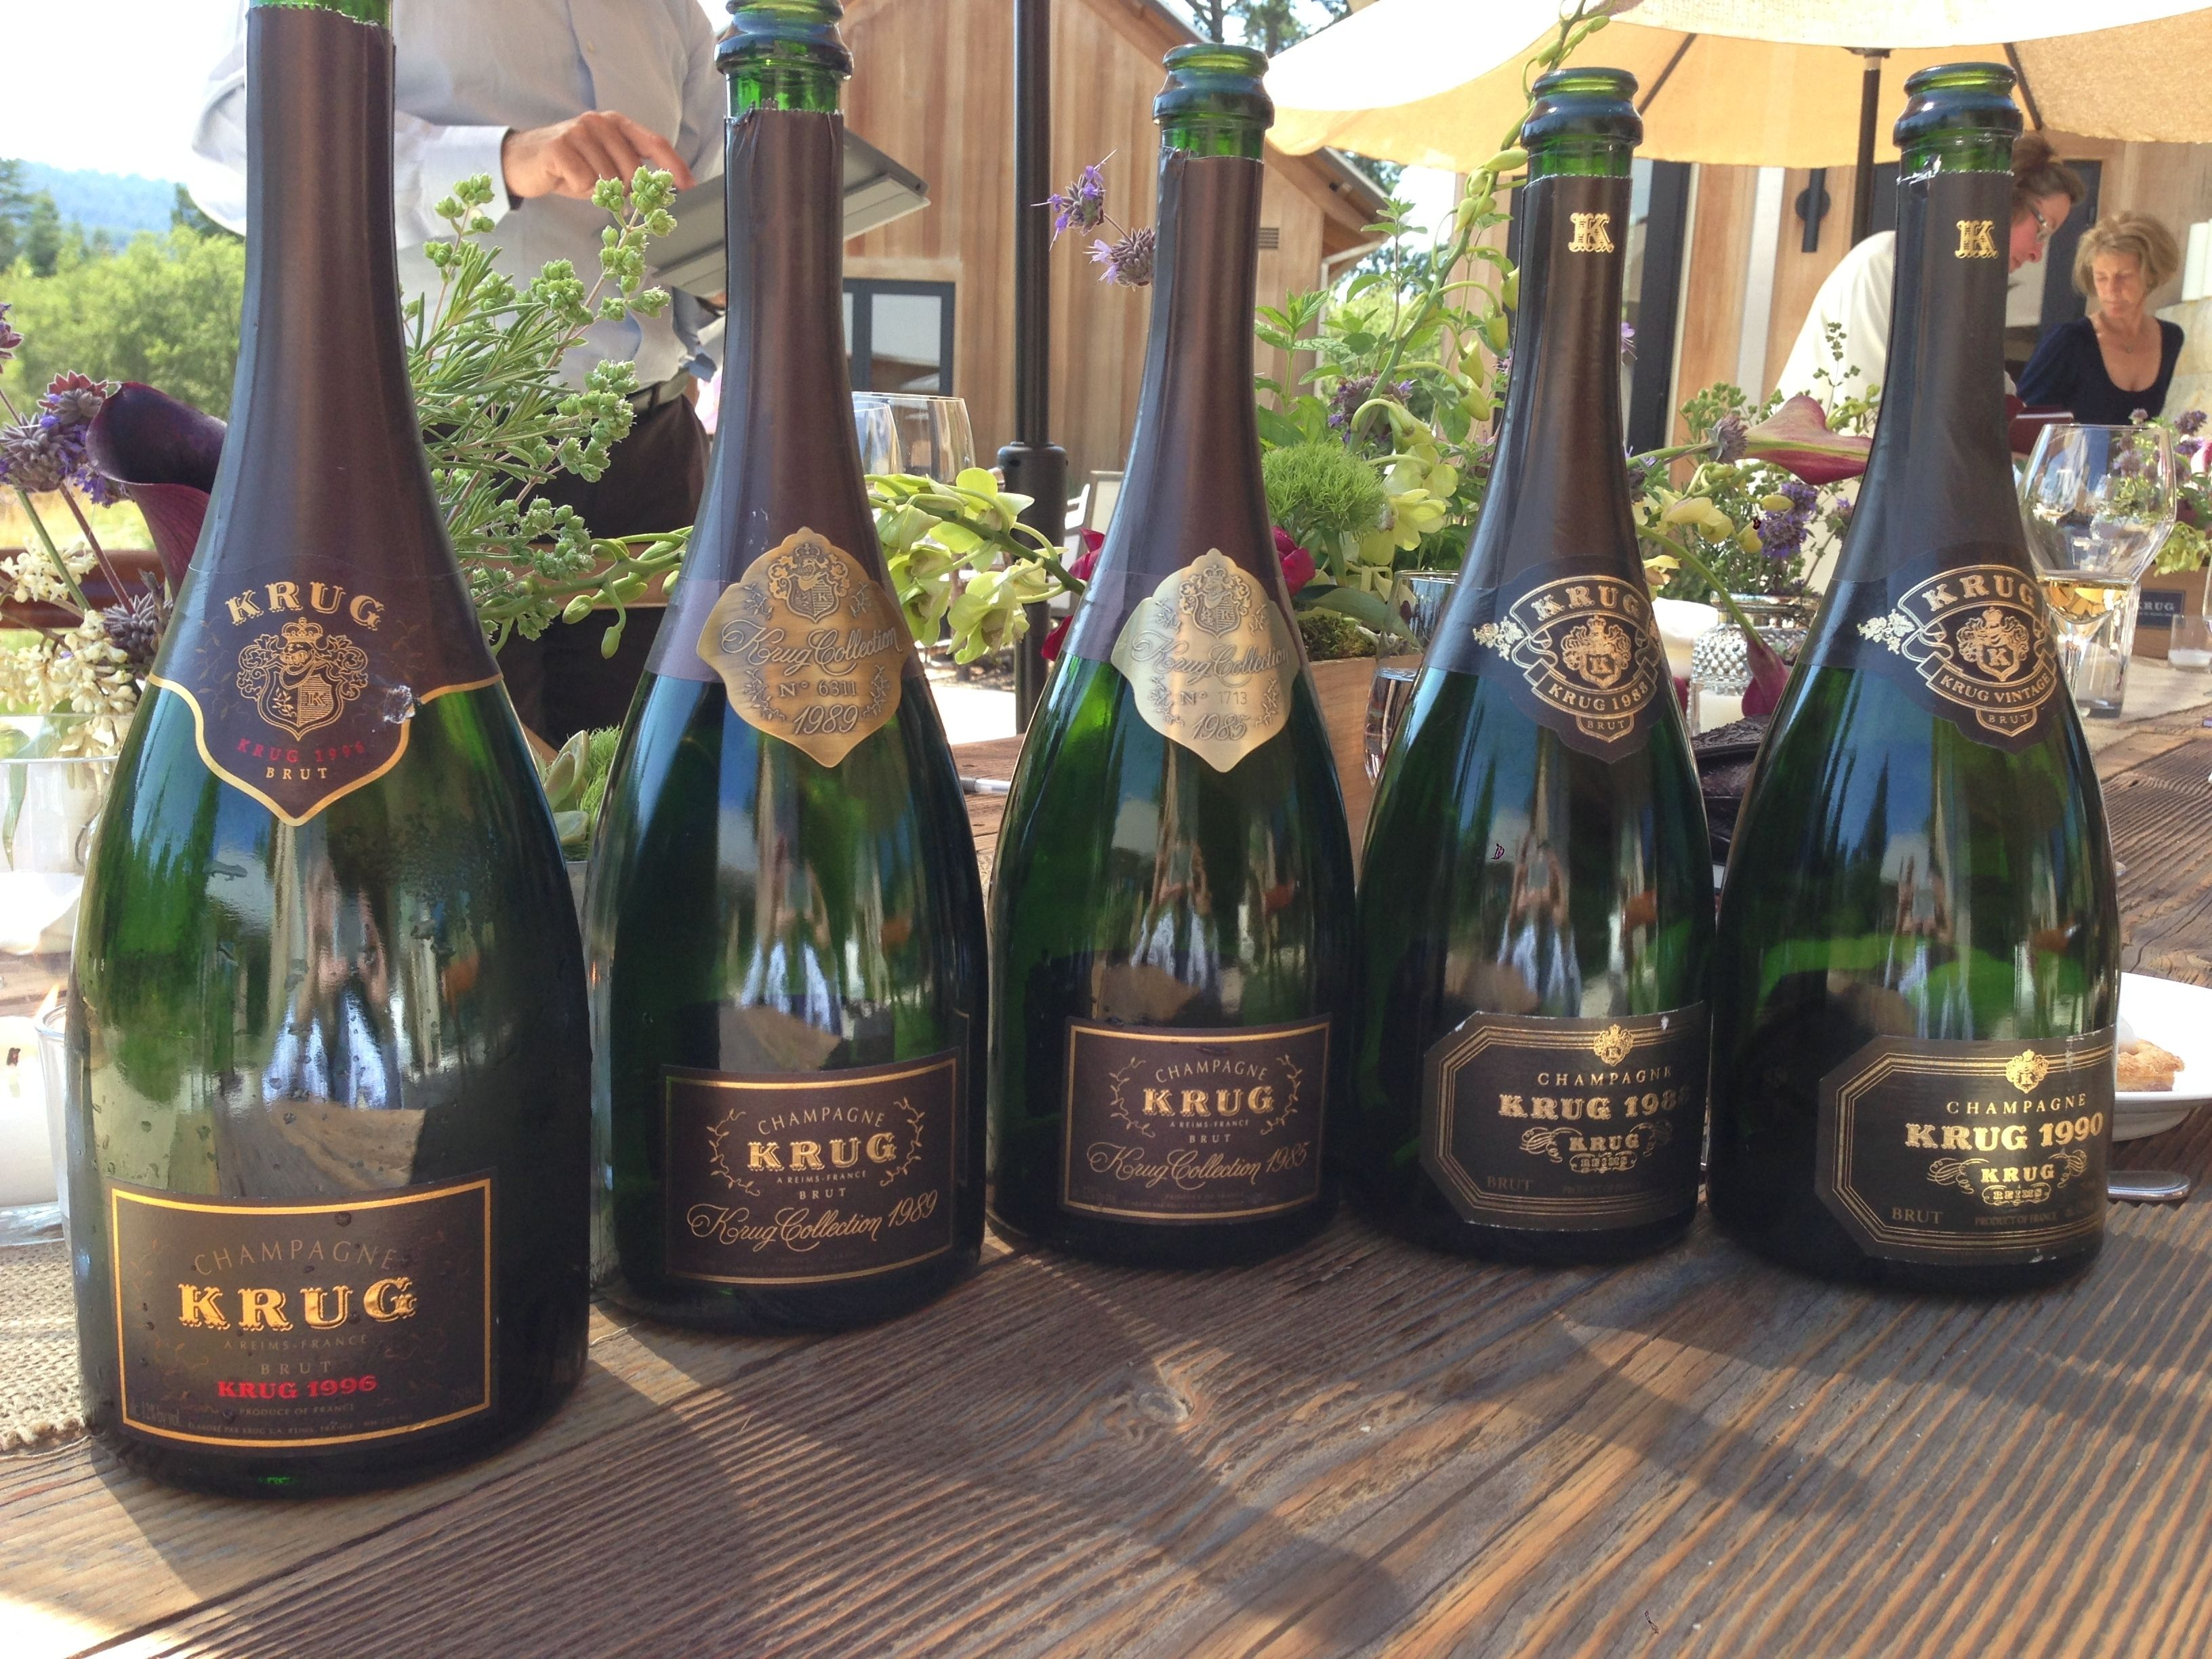 Krug Champagne Brut 1996 1998 1985 1988 1990 Champagne Krug Champagne Expensive Champagne